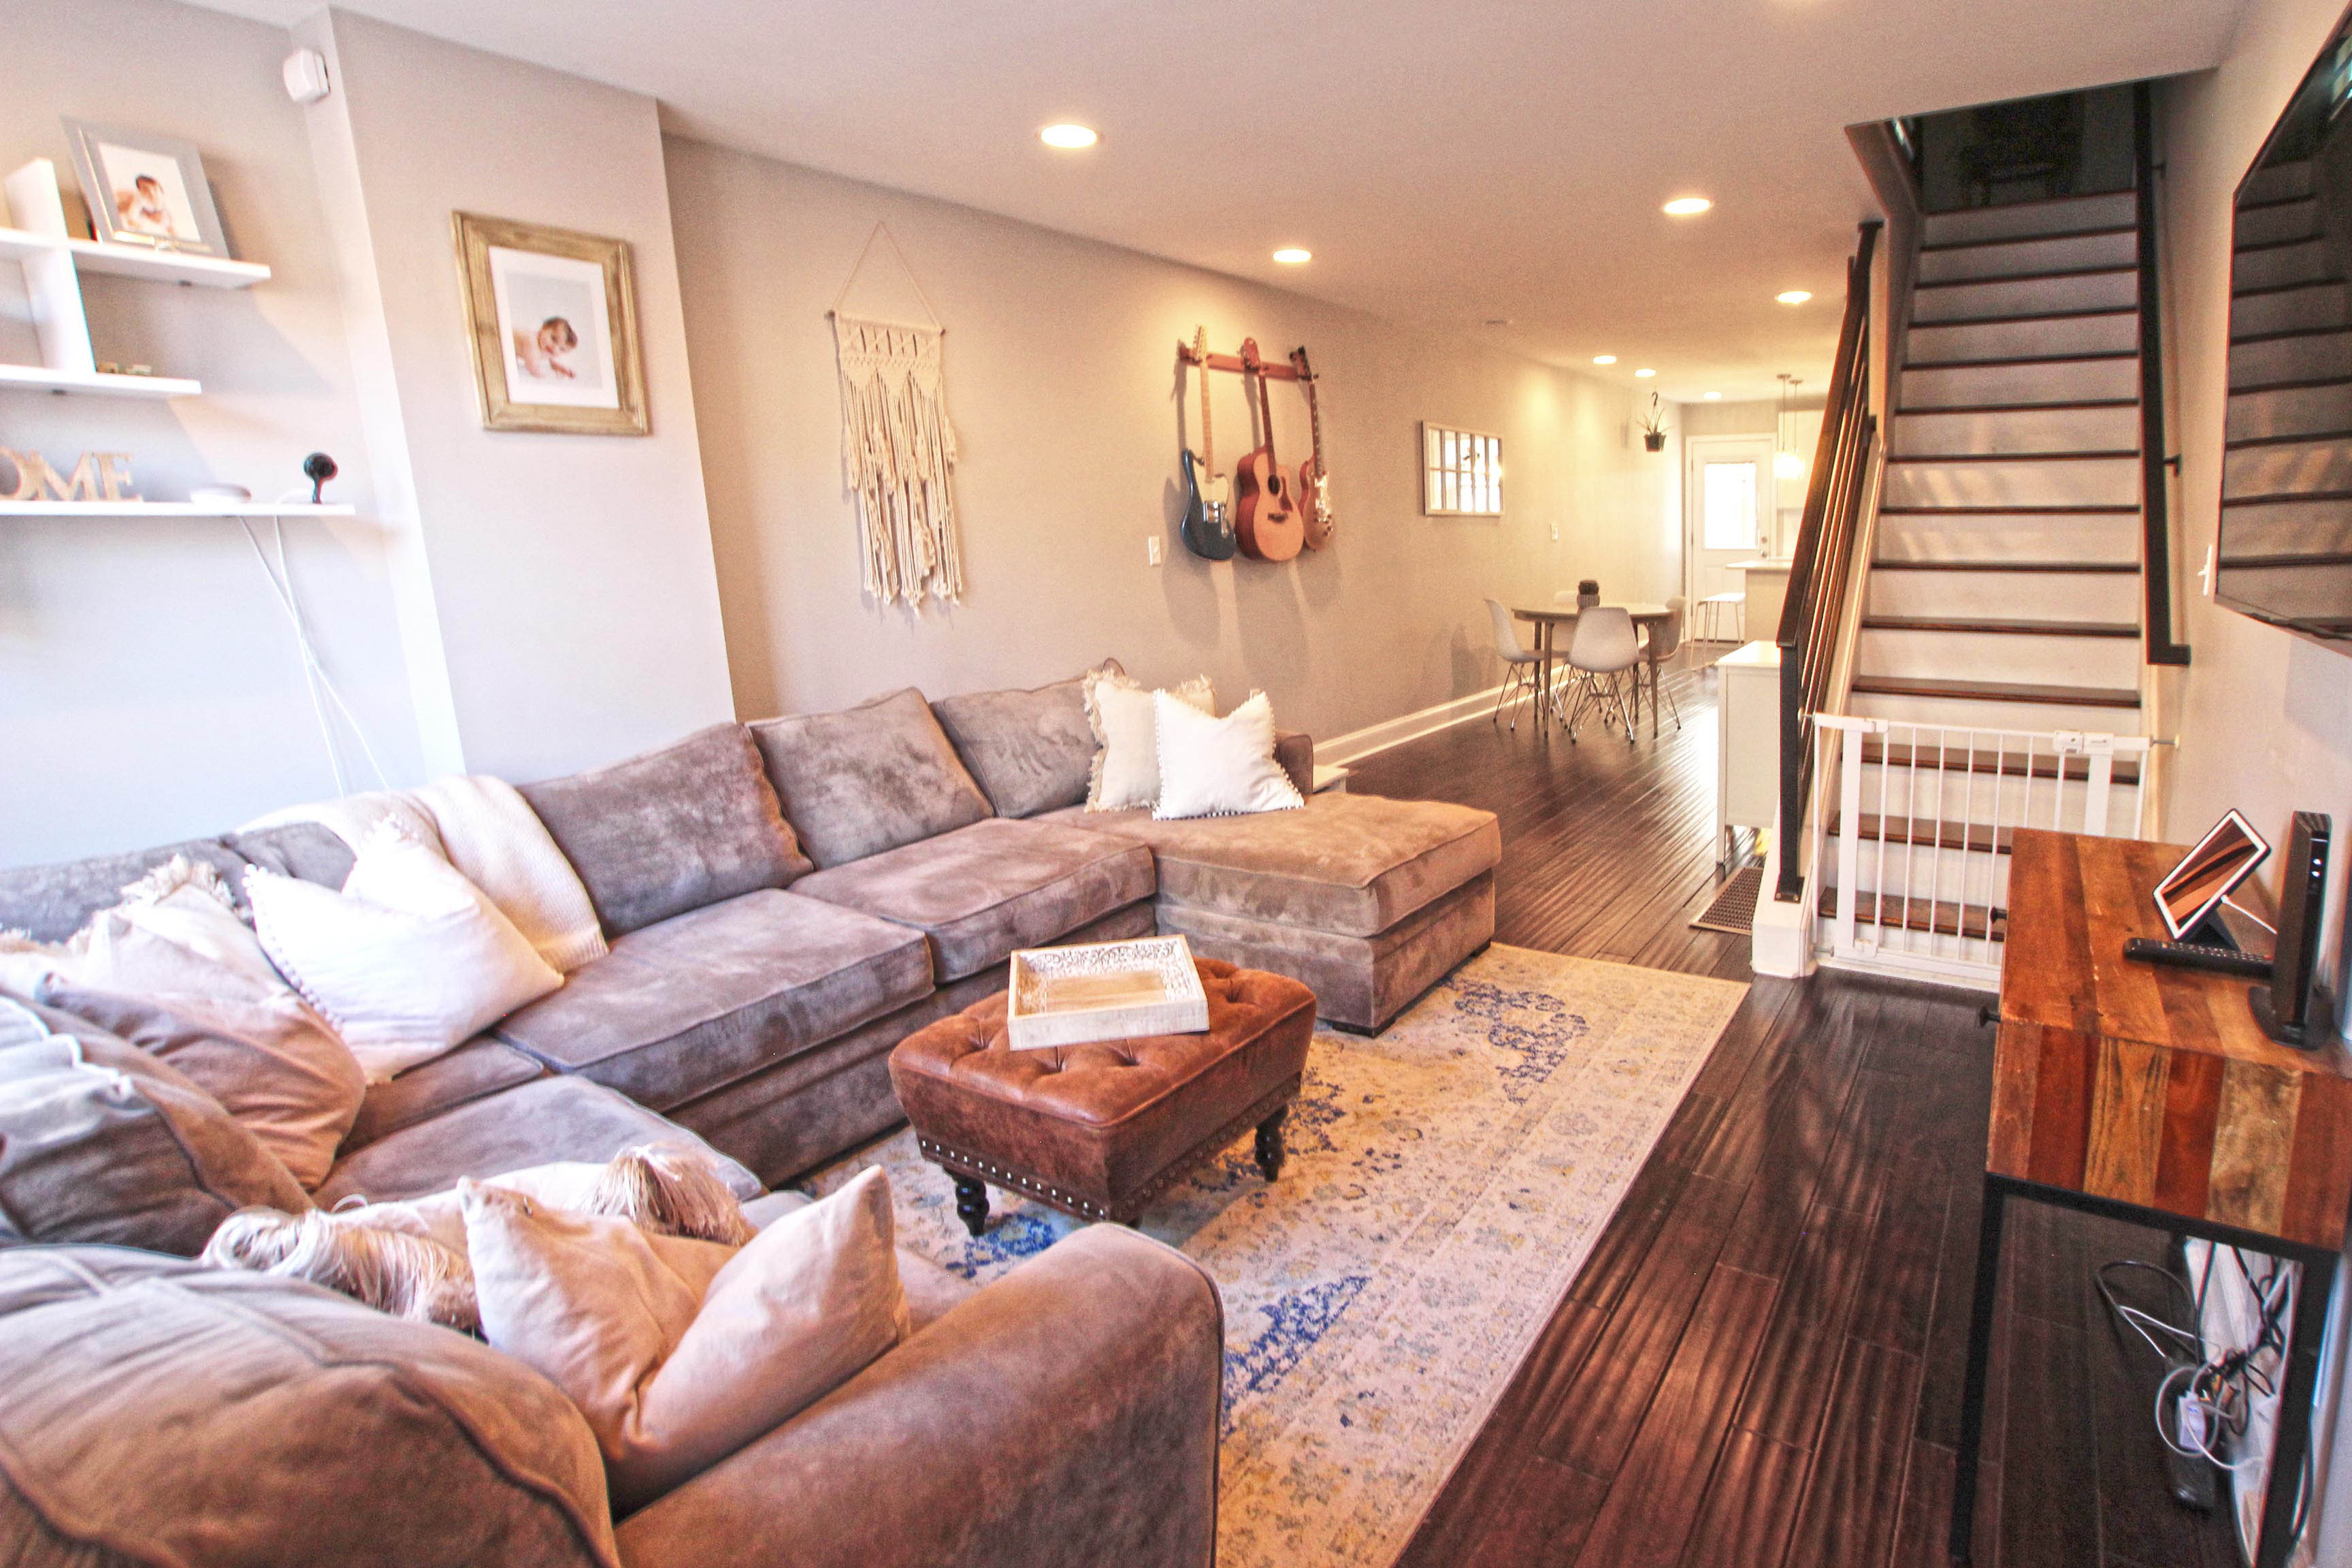 Philadelphia Home For Sale Just Listed!